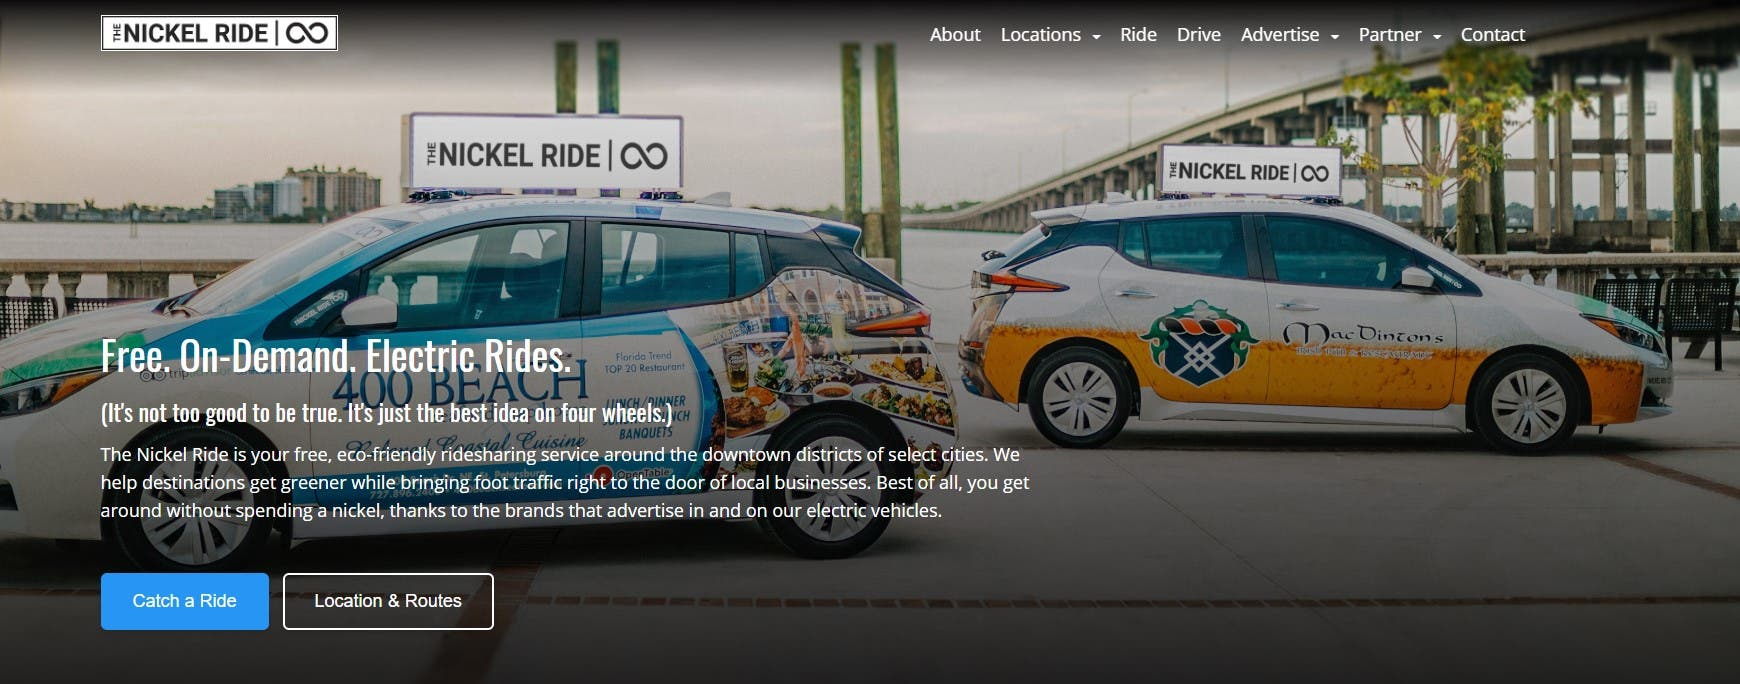 photo of Nickel Ride Finds EVs Are So Affordable … They Can Give Rides For Free image